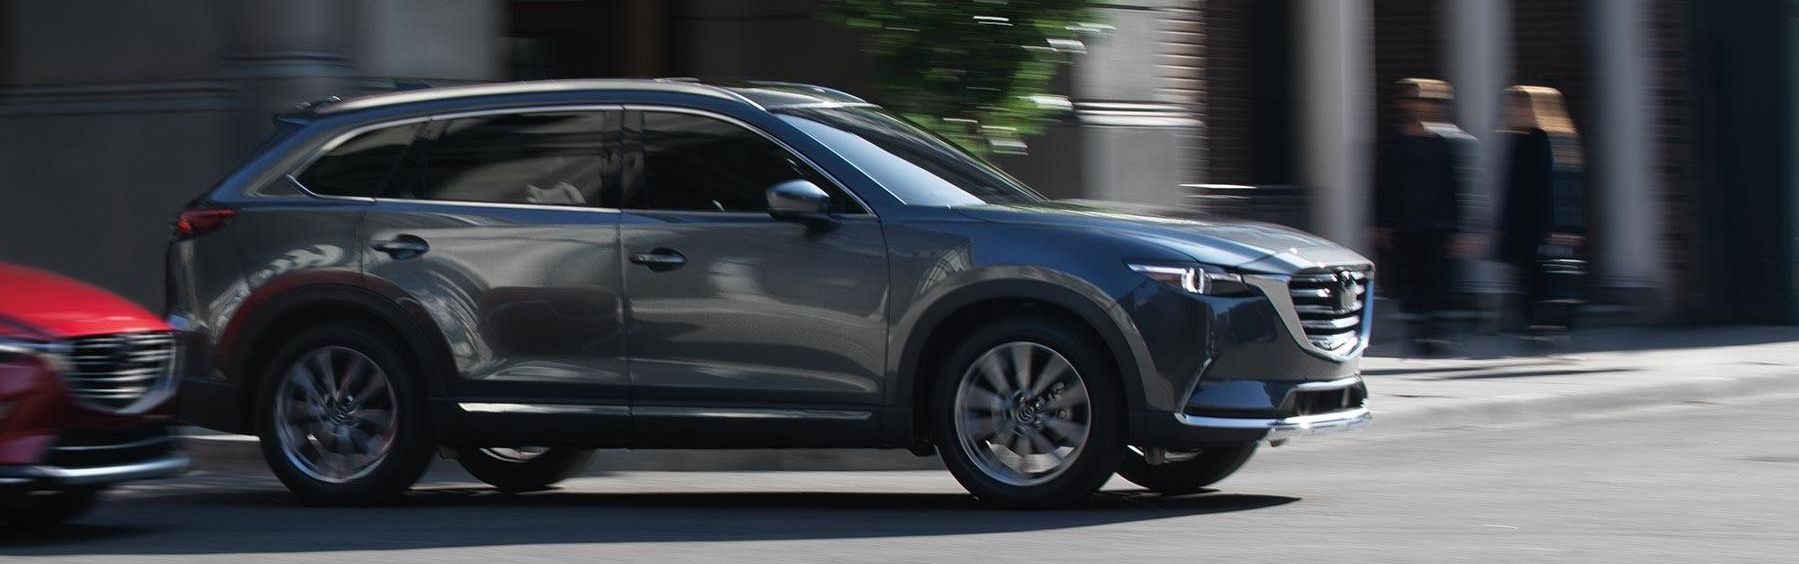 2019 Mazda CX-9 Leasing near Phoenix, AZ